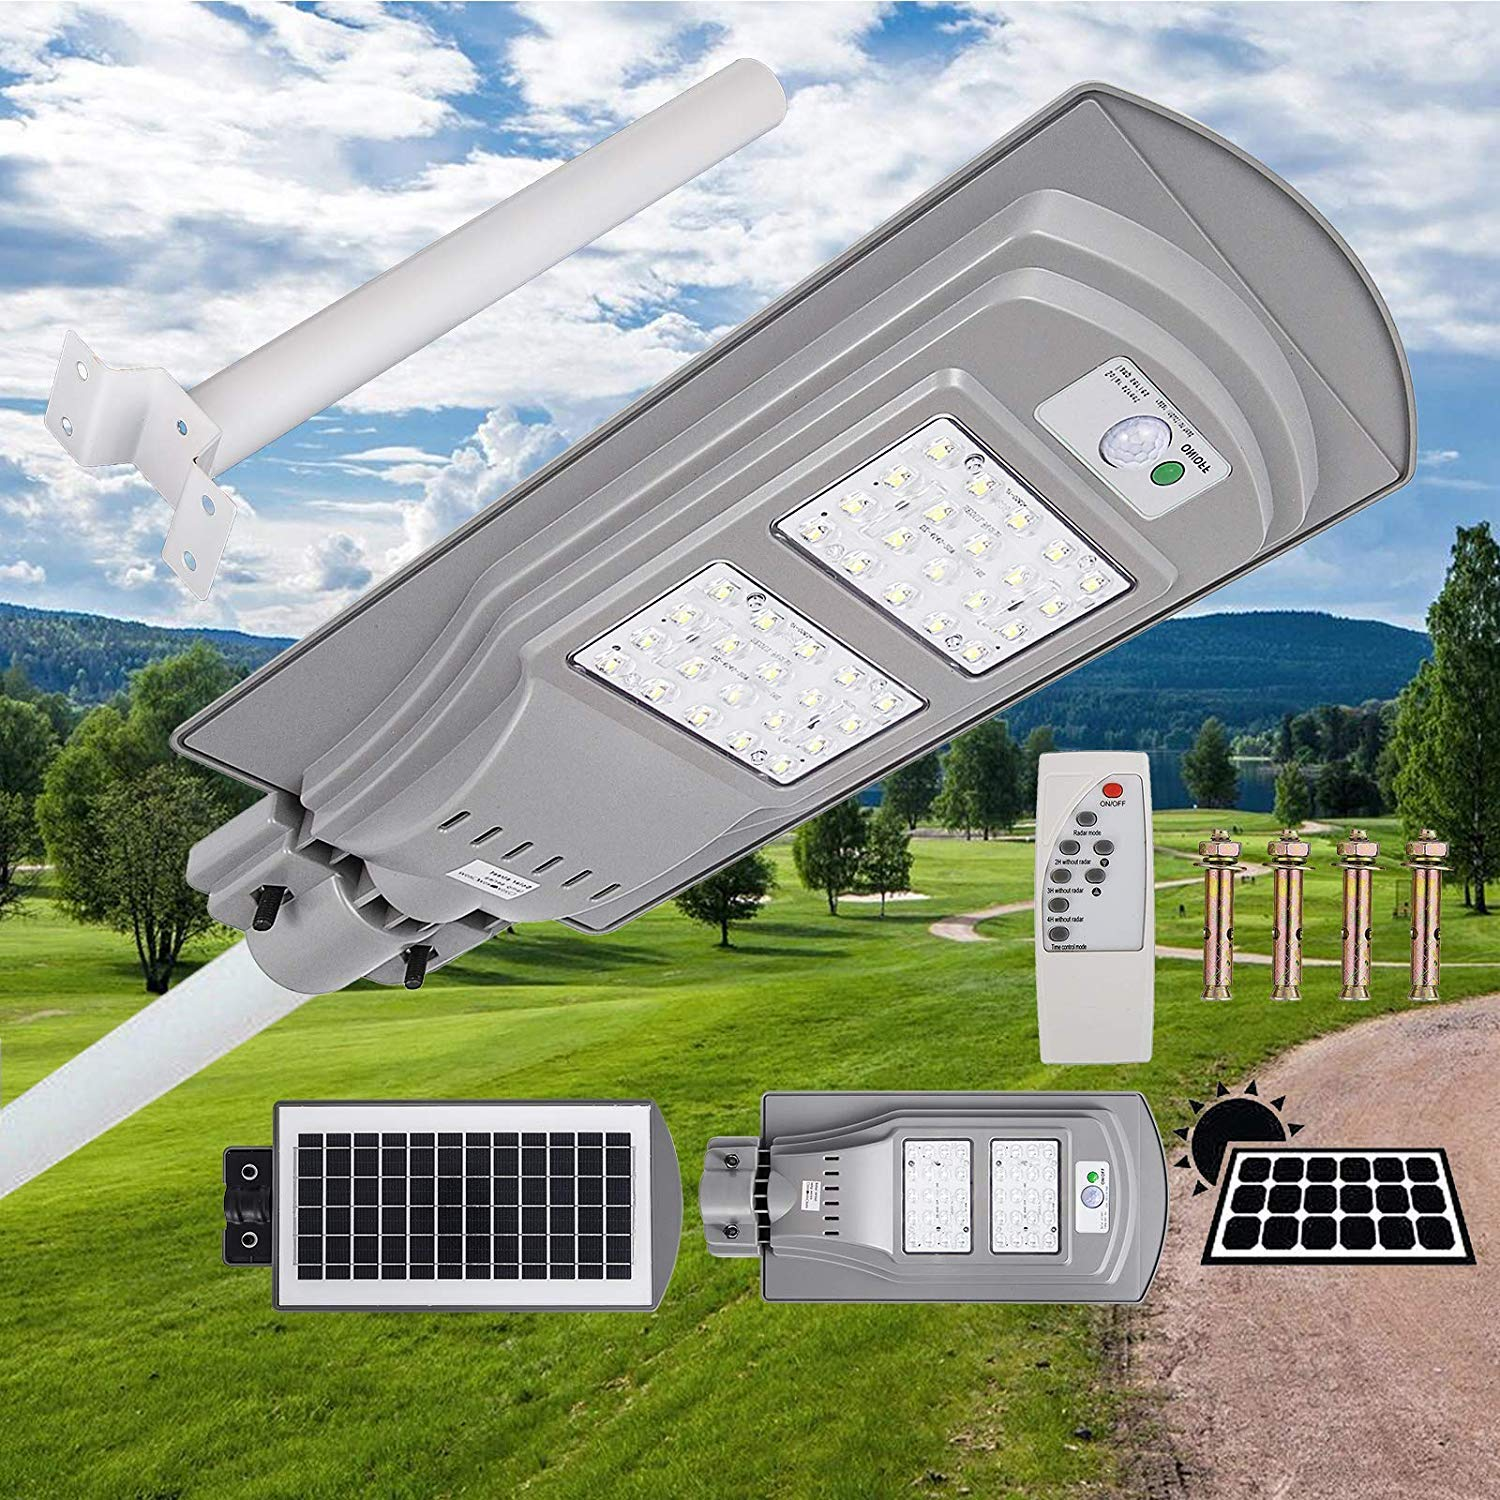 Mophorn Solar Street Light 40W LED Street Light with Remote Controller and Light Arm LED Solar Street Light Waterproof LED Radar Sensor Street Lamp for Outdoor Applications (40W, with Light Arm)